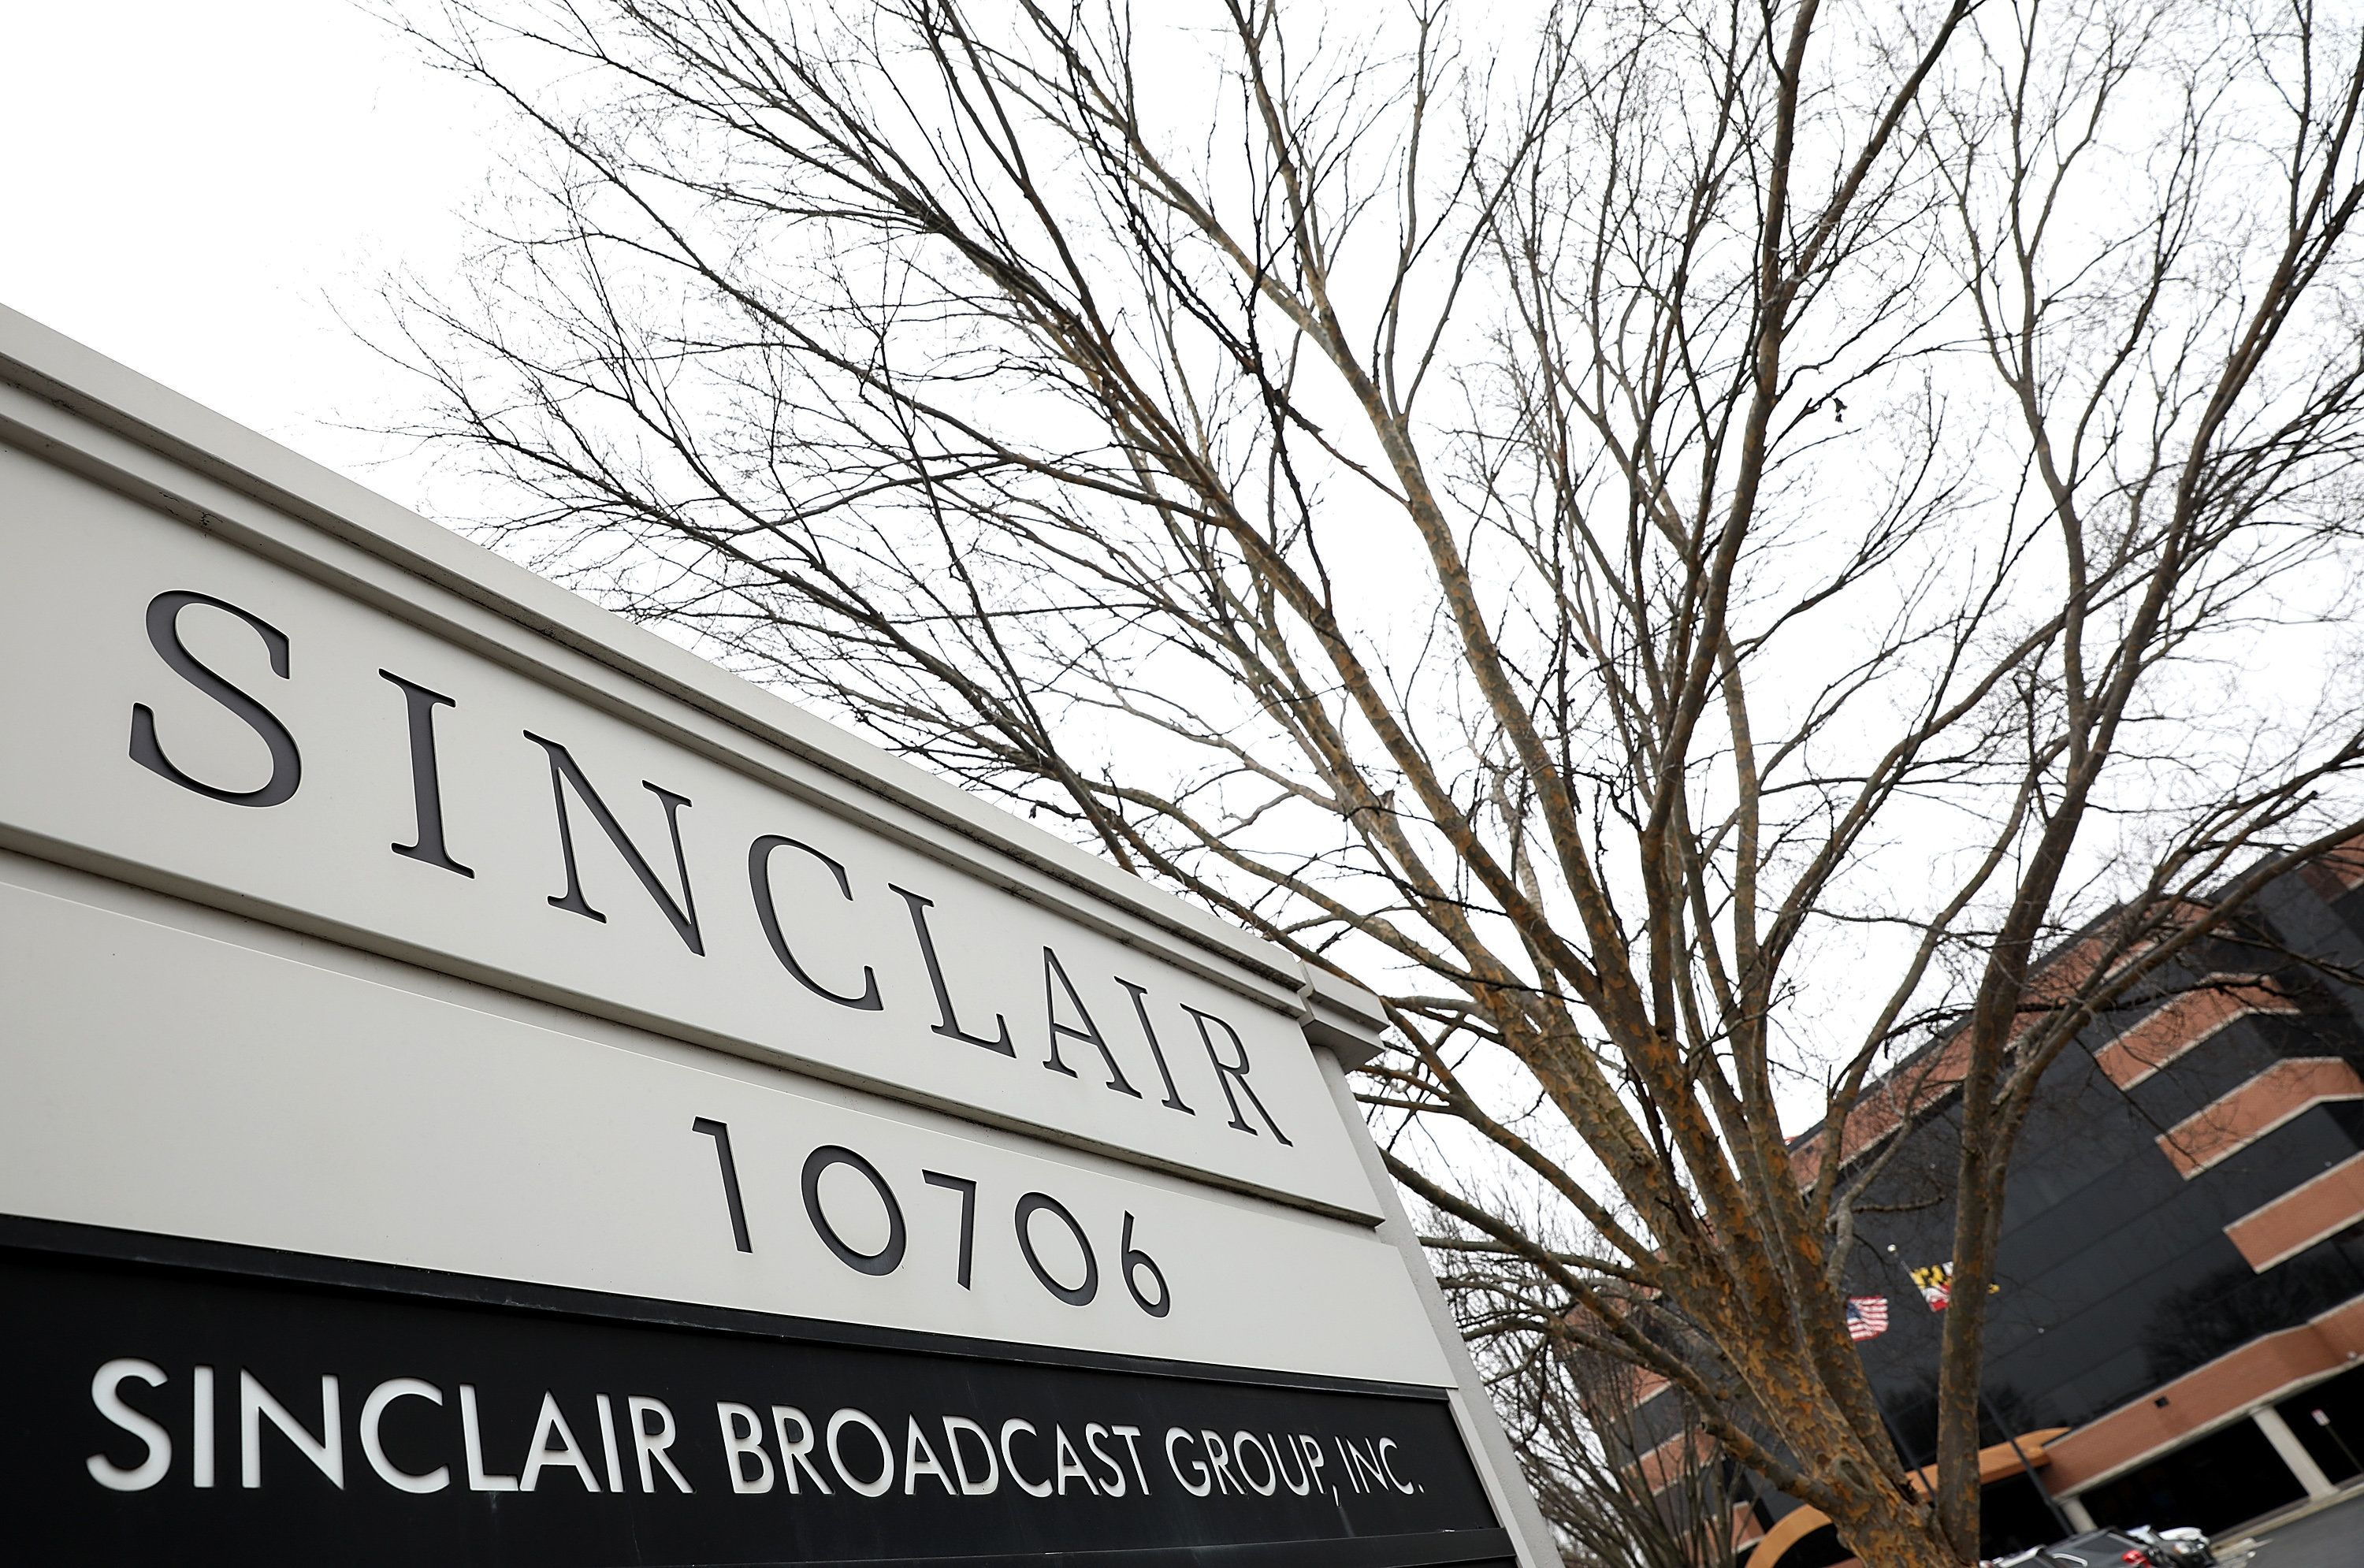 HUNT VALLEY, MD - APRIL 03:  The headquarters of the Sinclair Broadcast Group is shown April 3, 2018 in Hunt Valley, Maryland. The company, the largest owner of local television stations in the United States, has drawn attention recently for repeating claims by U.S President Donald Trump that traditional television and print publications offer 'fake' or biased news.  (Photo by Win McNamee/Getty Images)